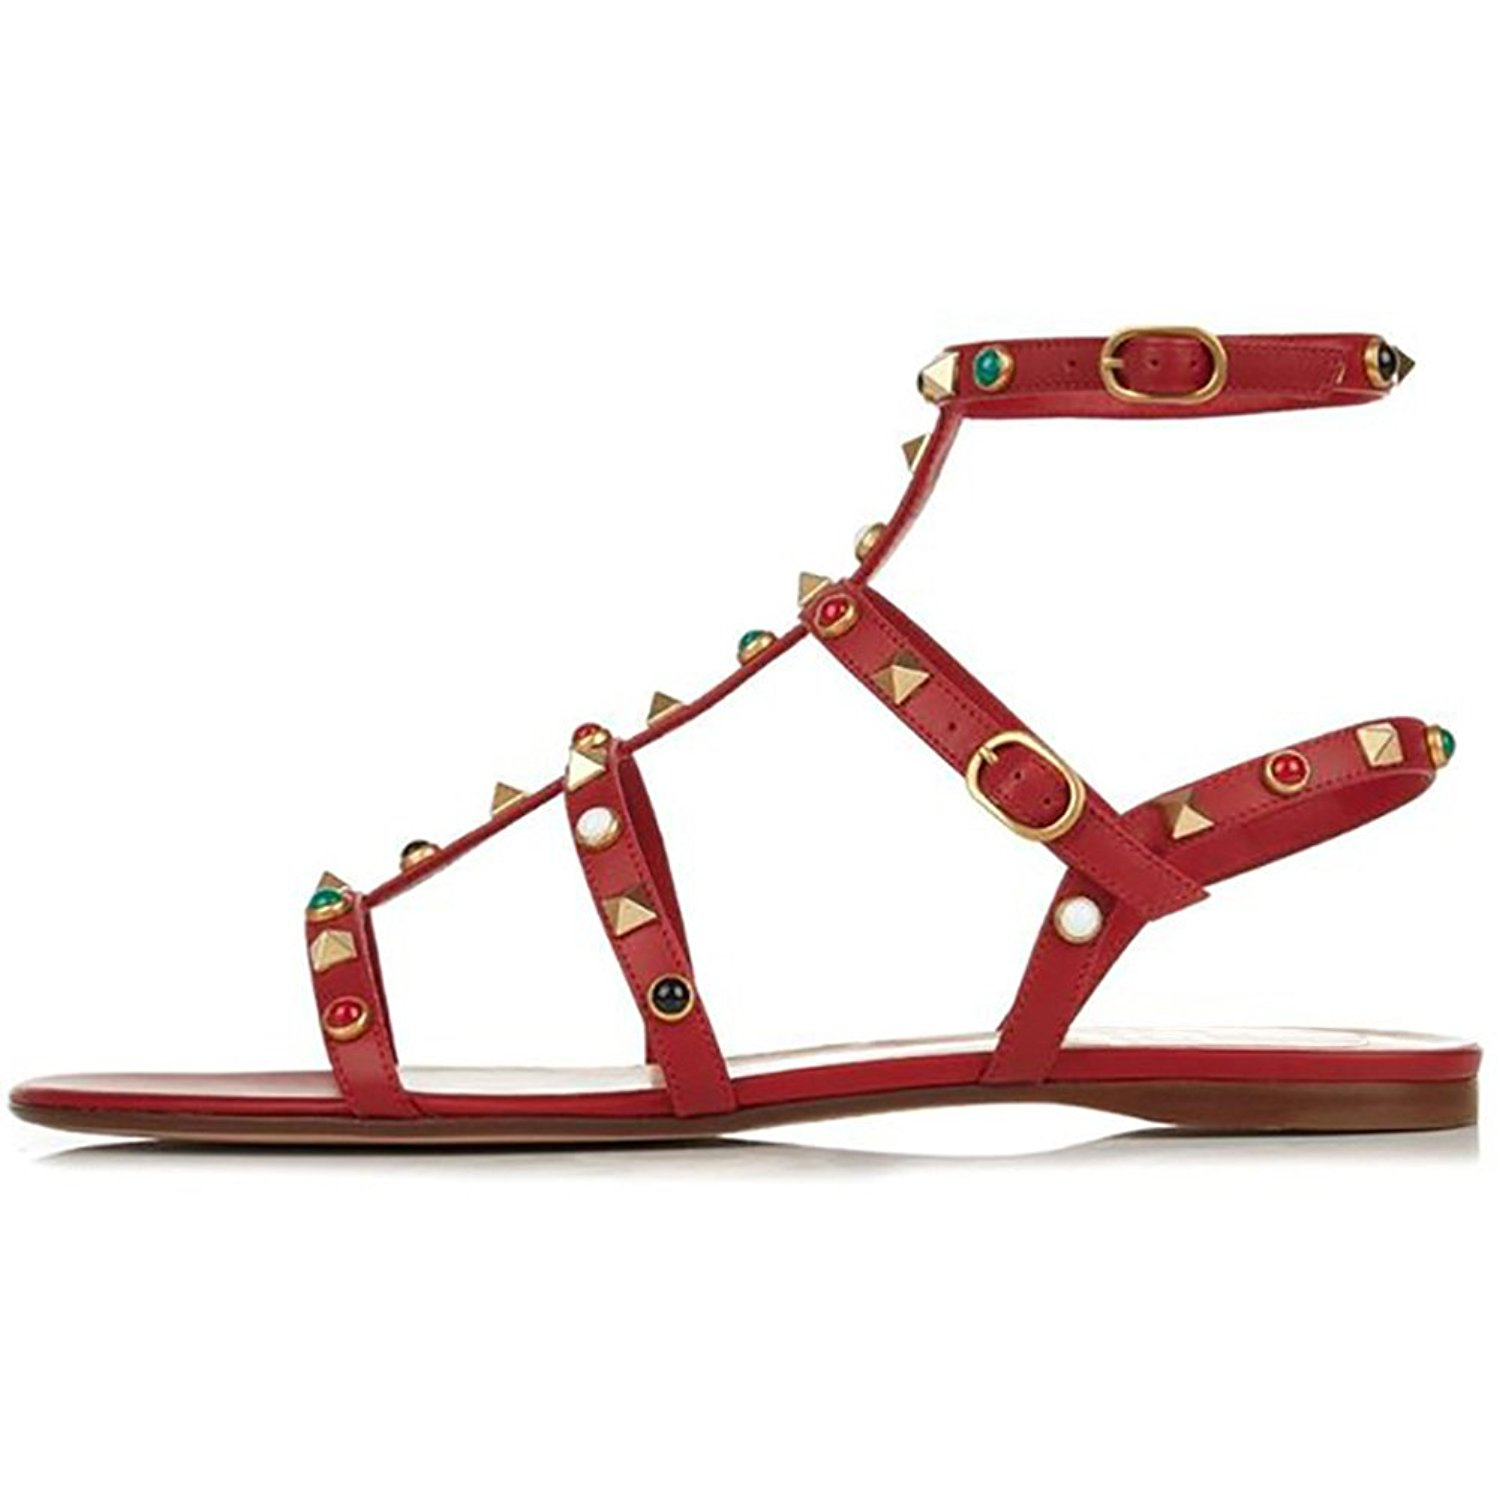 VOCOSI Women's Flats Sandals,Rivets Studs Ankle Strap Strappy Summer Sandals Shoes